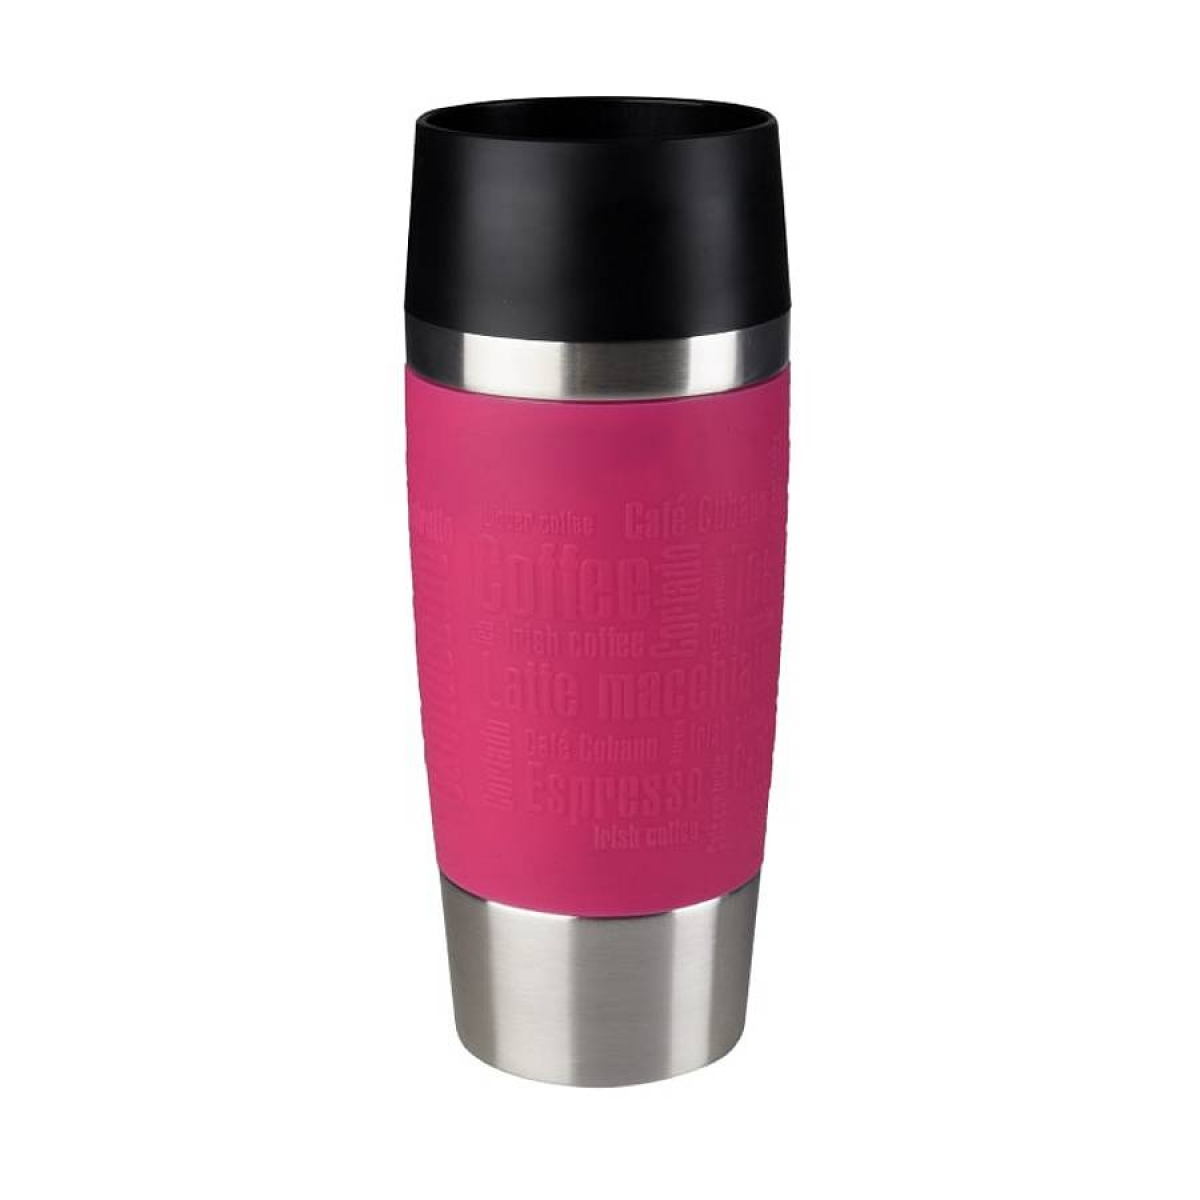 Emsa Travel Mug Thermobecher Himbeere 0,36 Liter